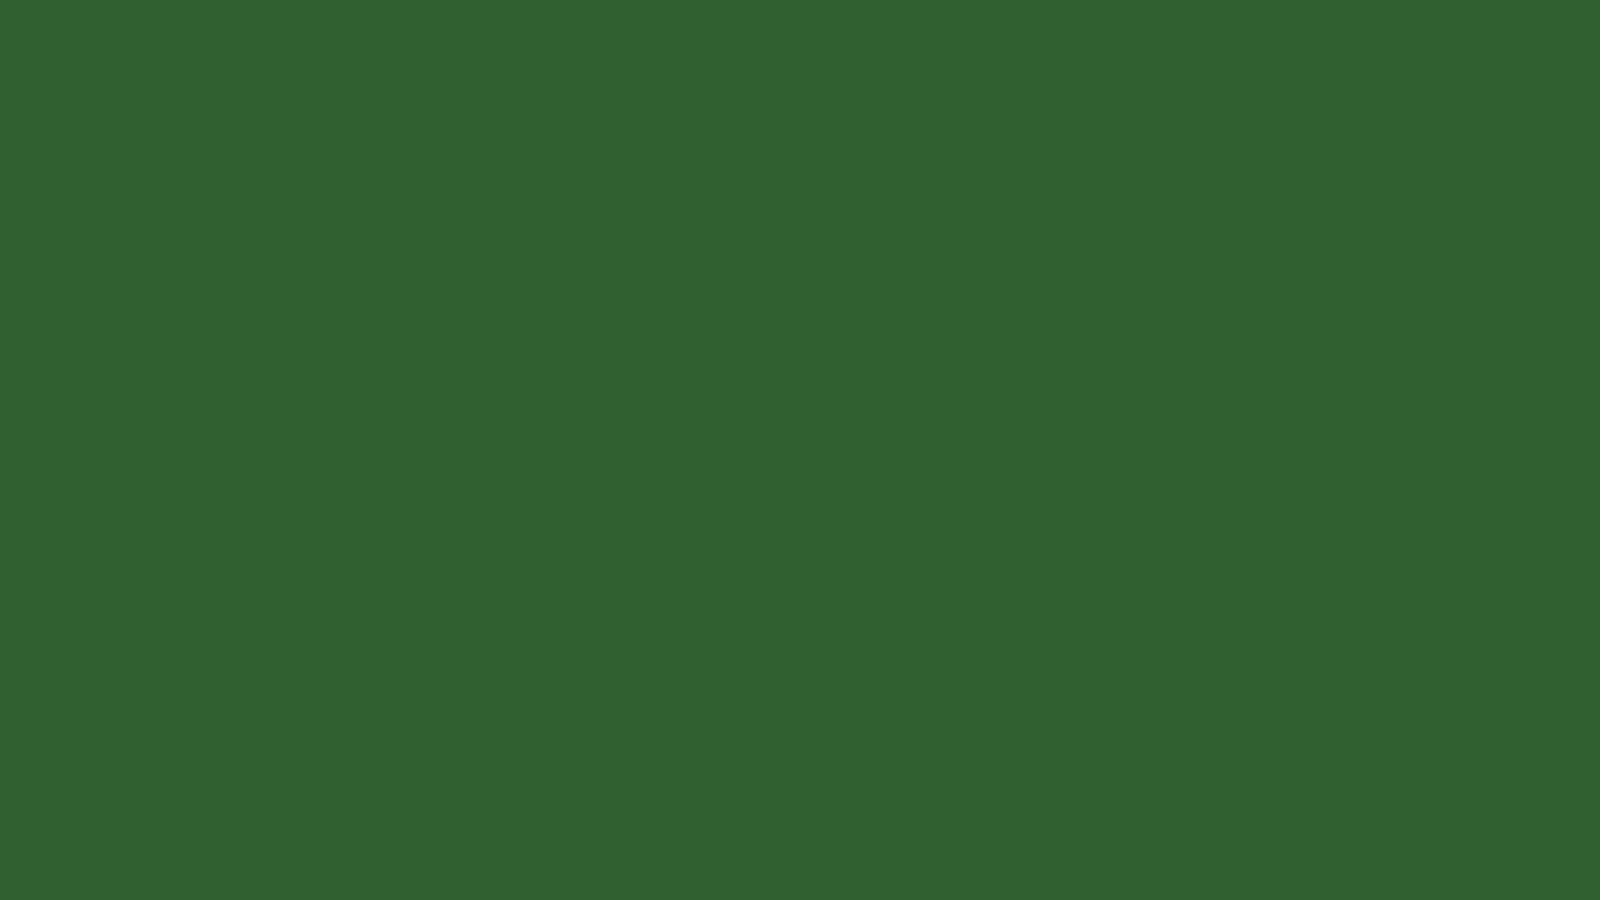 1600x900 Mughal Green Solid Color Background